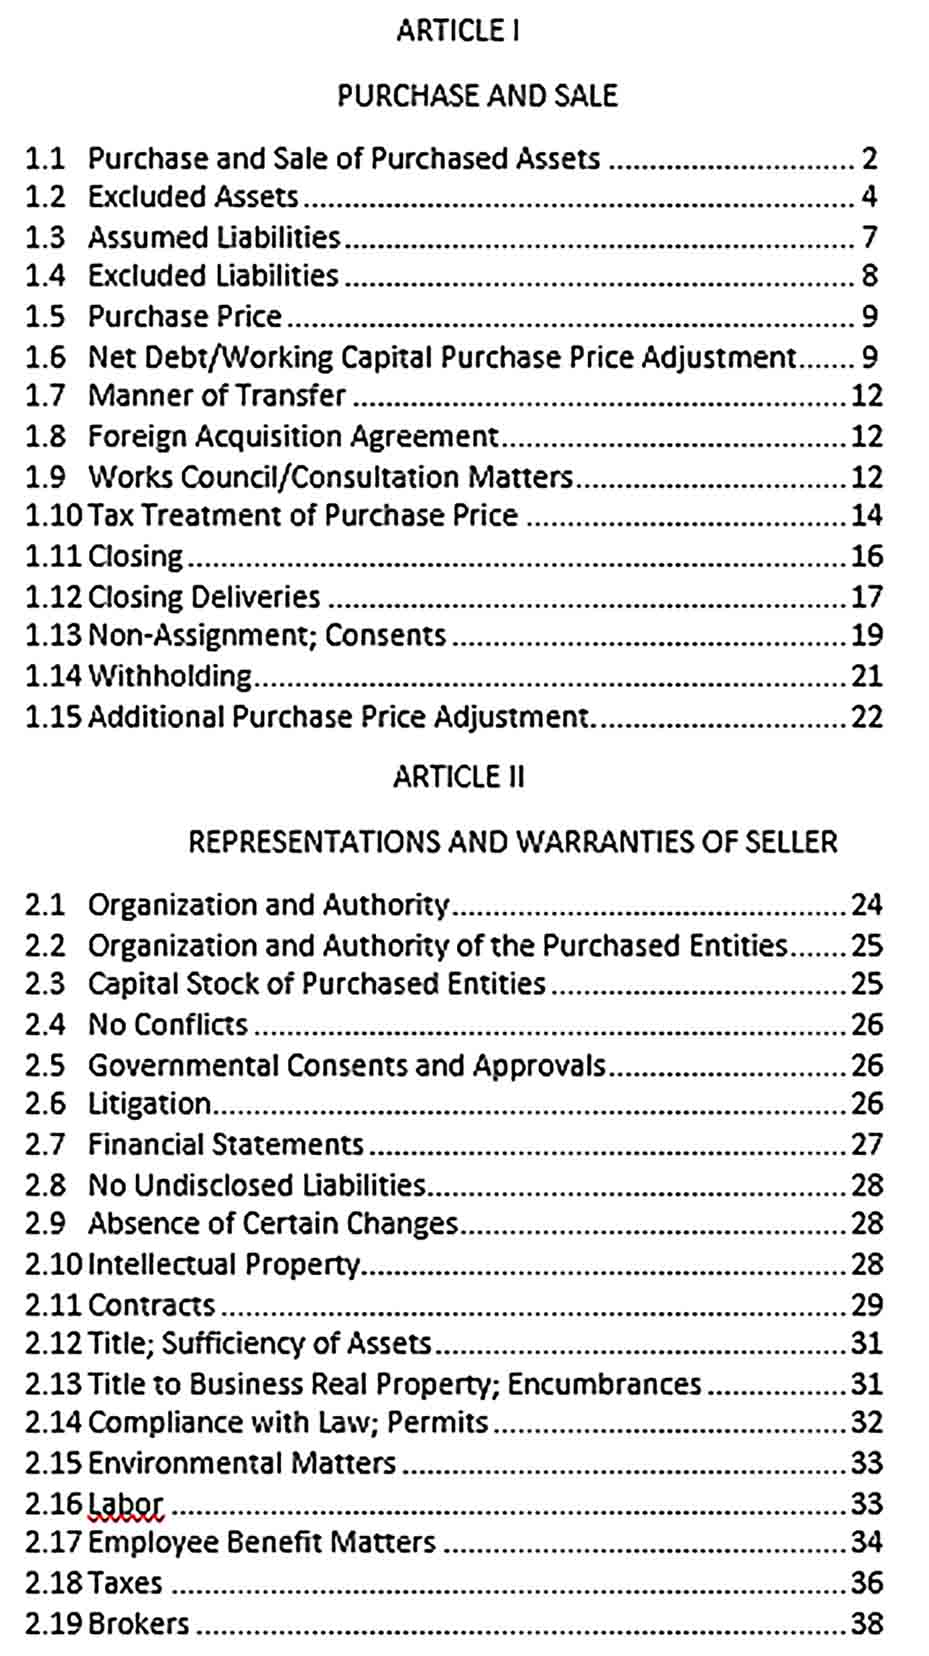 Sample Equity and Asset Purchase Agreement Executed